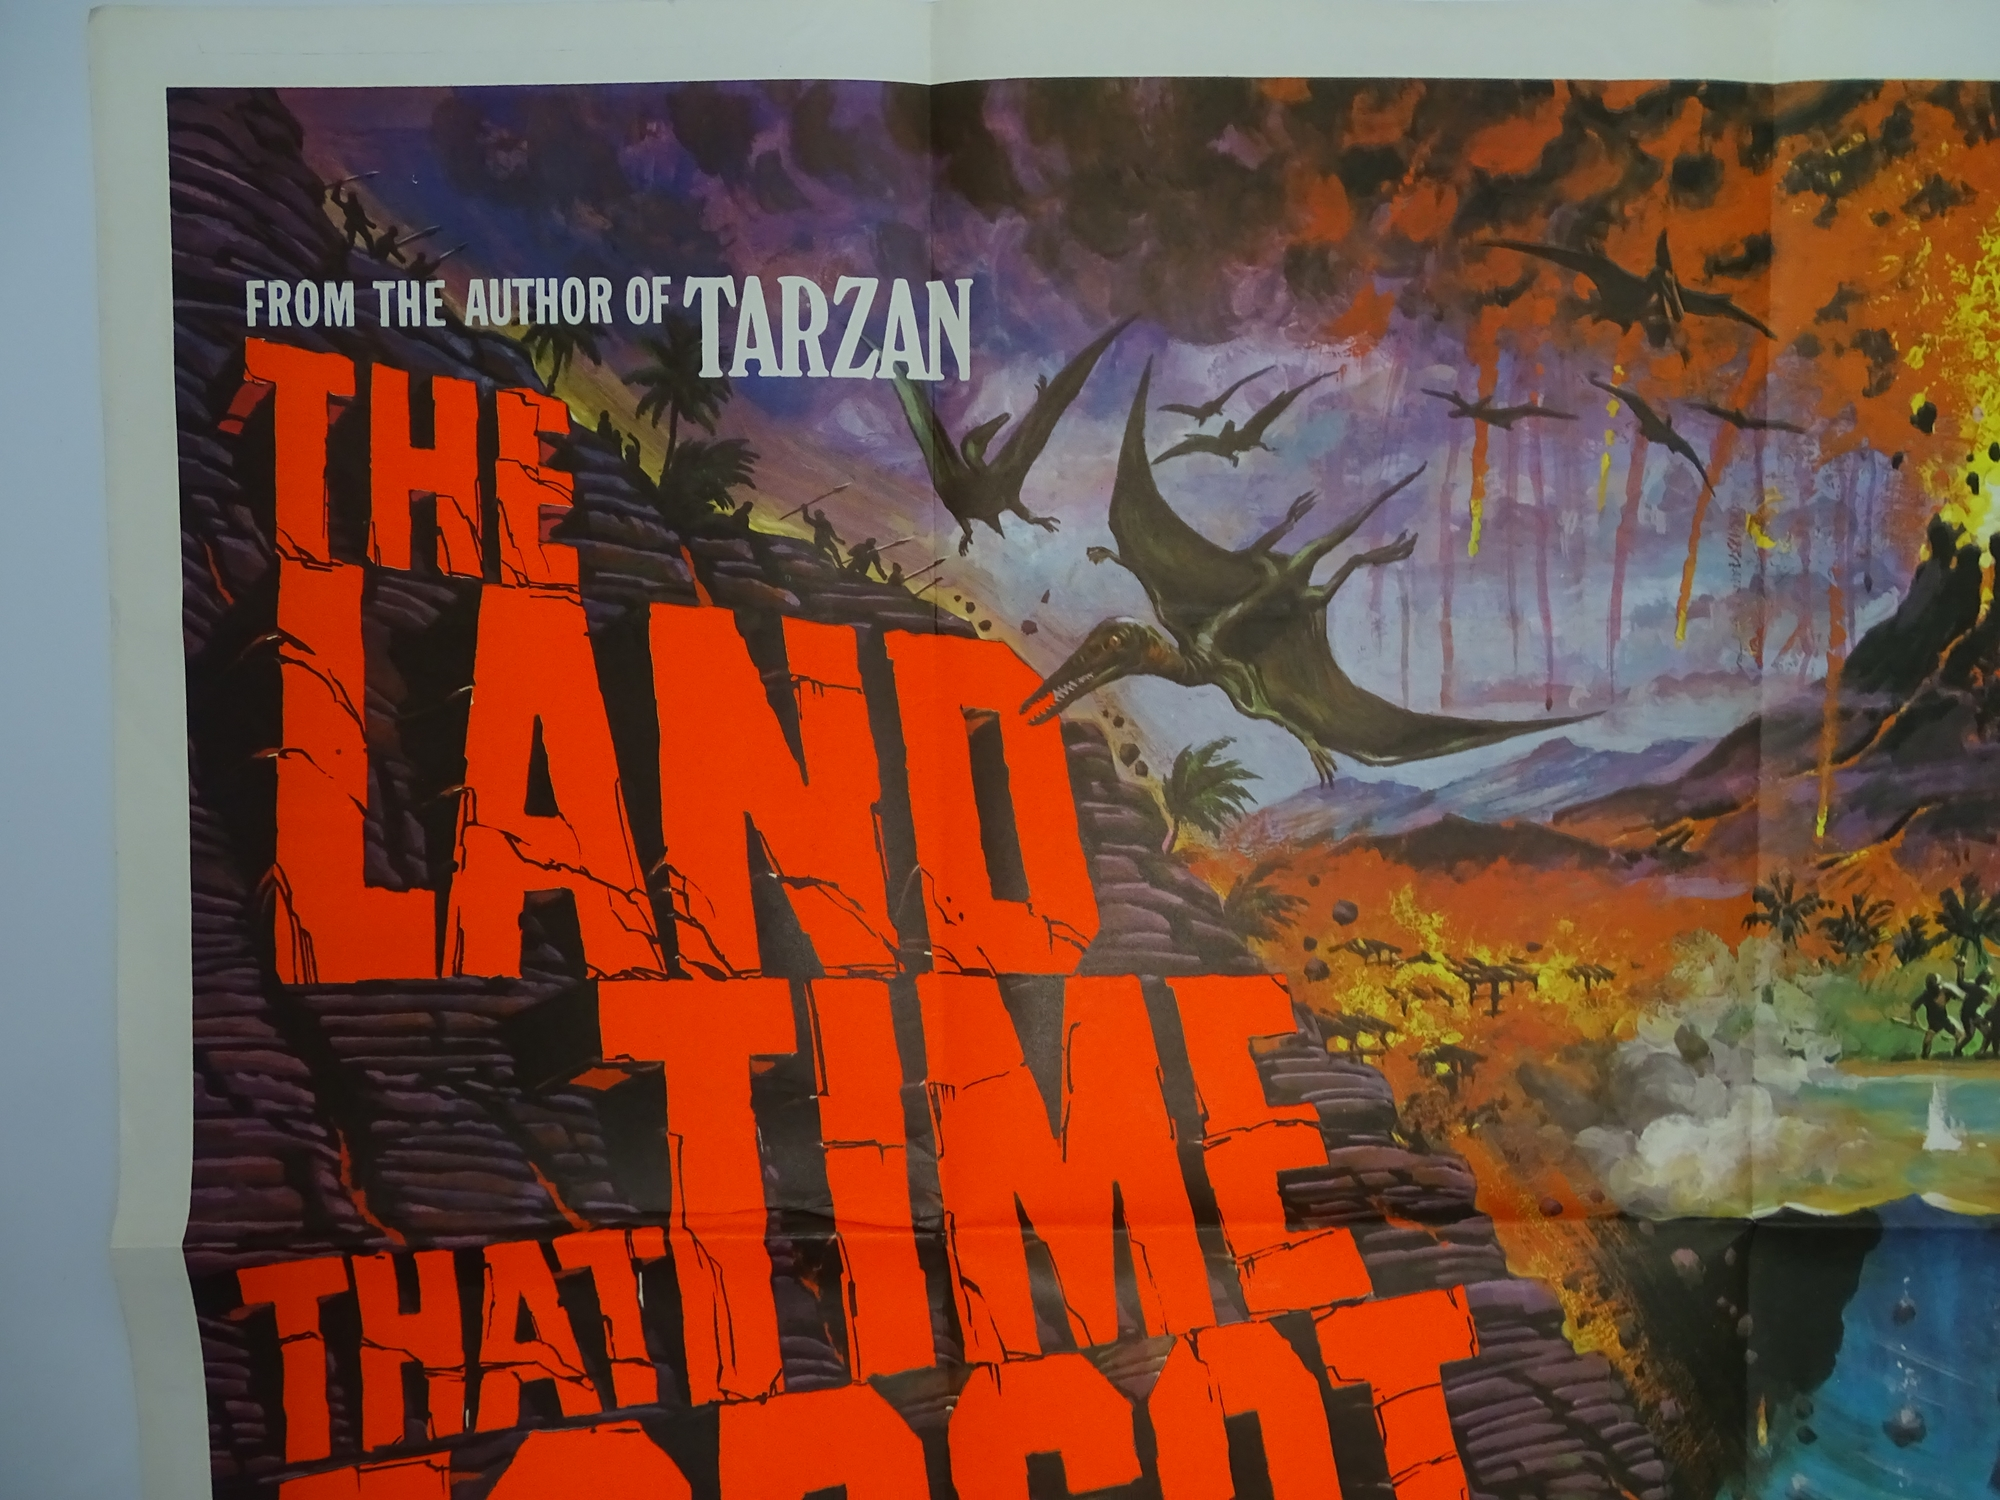 """THE LAND THAT TIME FORGOT (1975) - Artwork by Tom Chantrell British UK Quad Film Poster - 30"""" x - Image 3 of 6"""